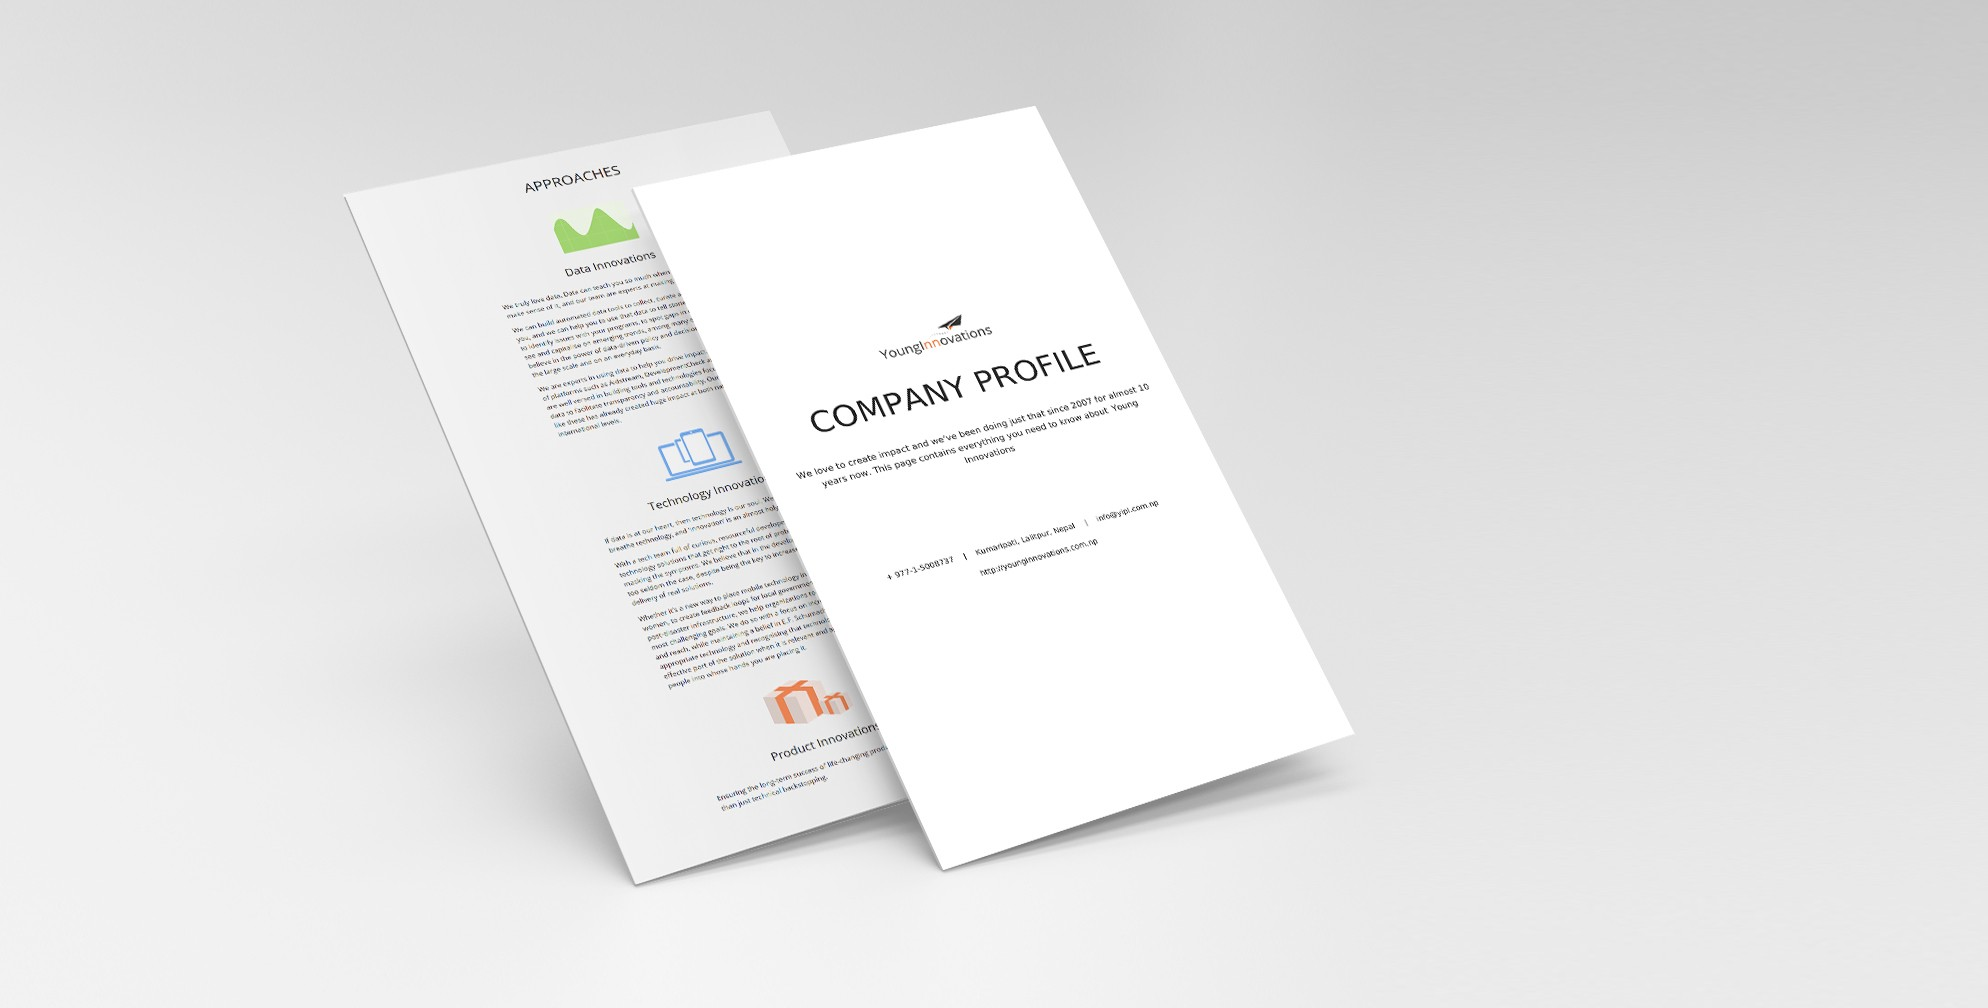 Developing Company Profile page of YoungInnovations